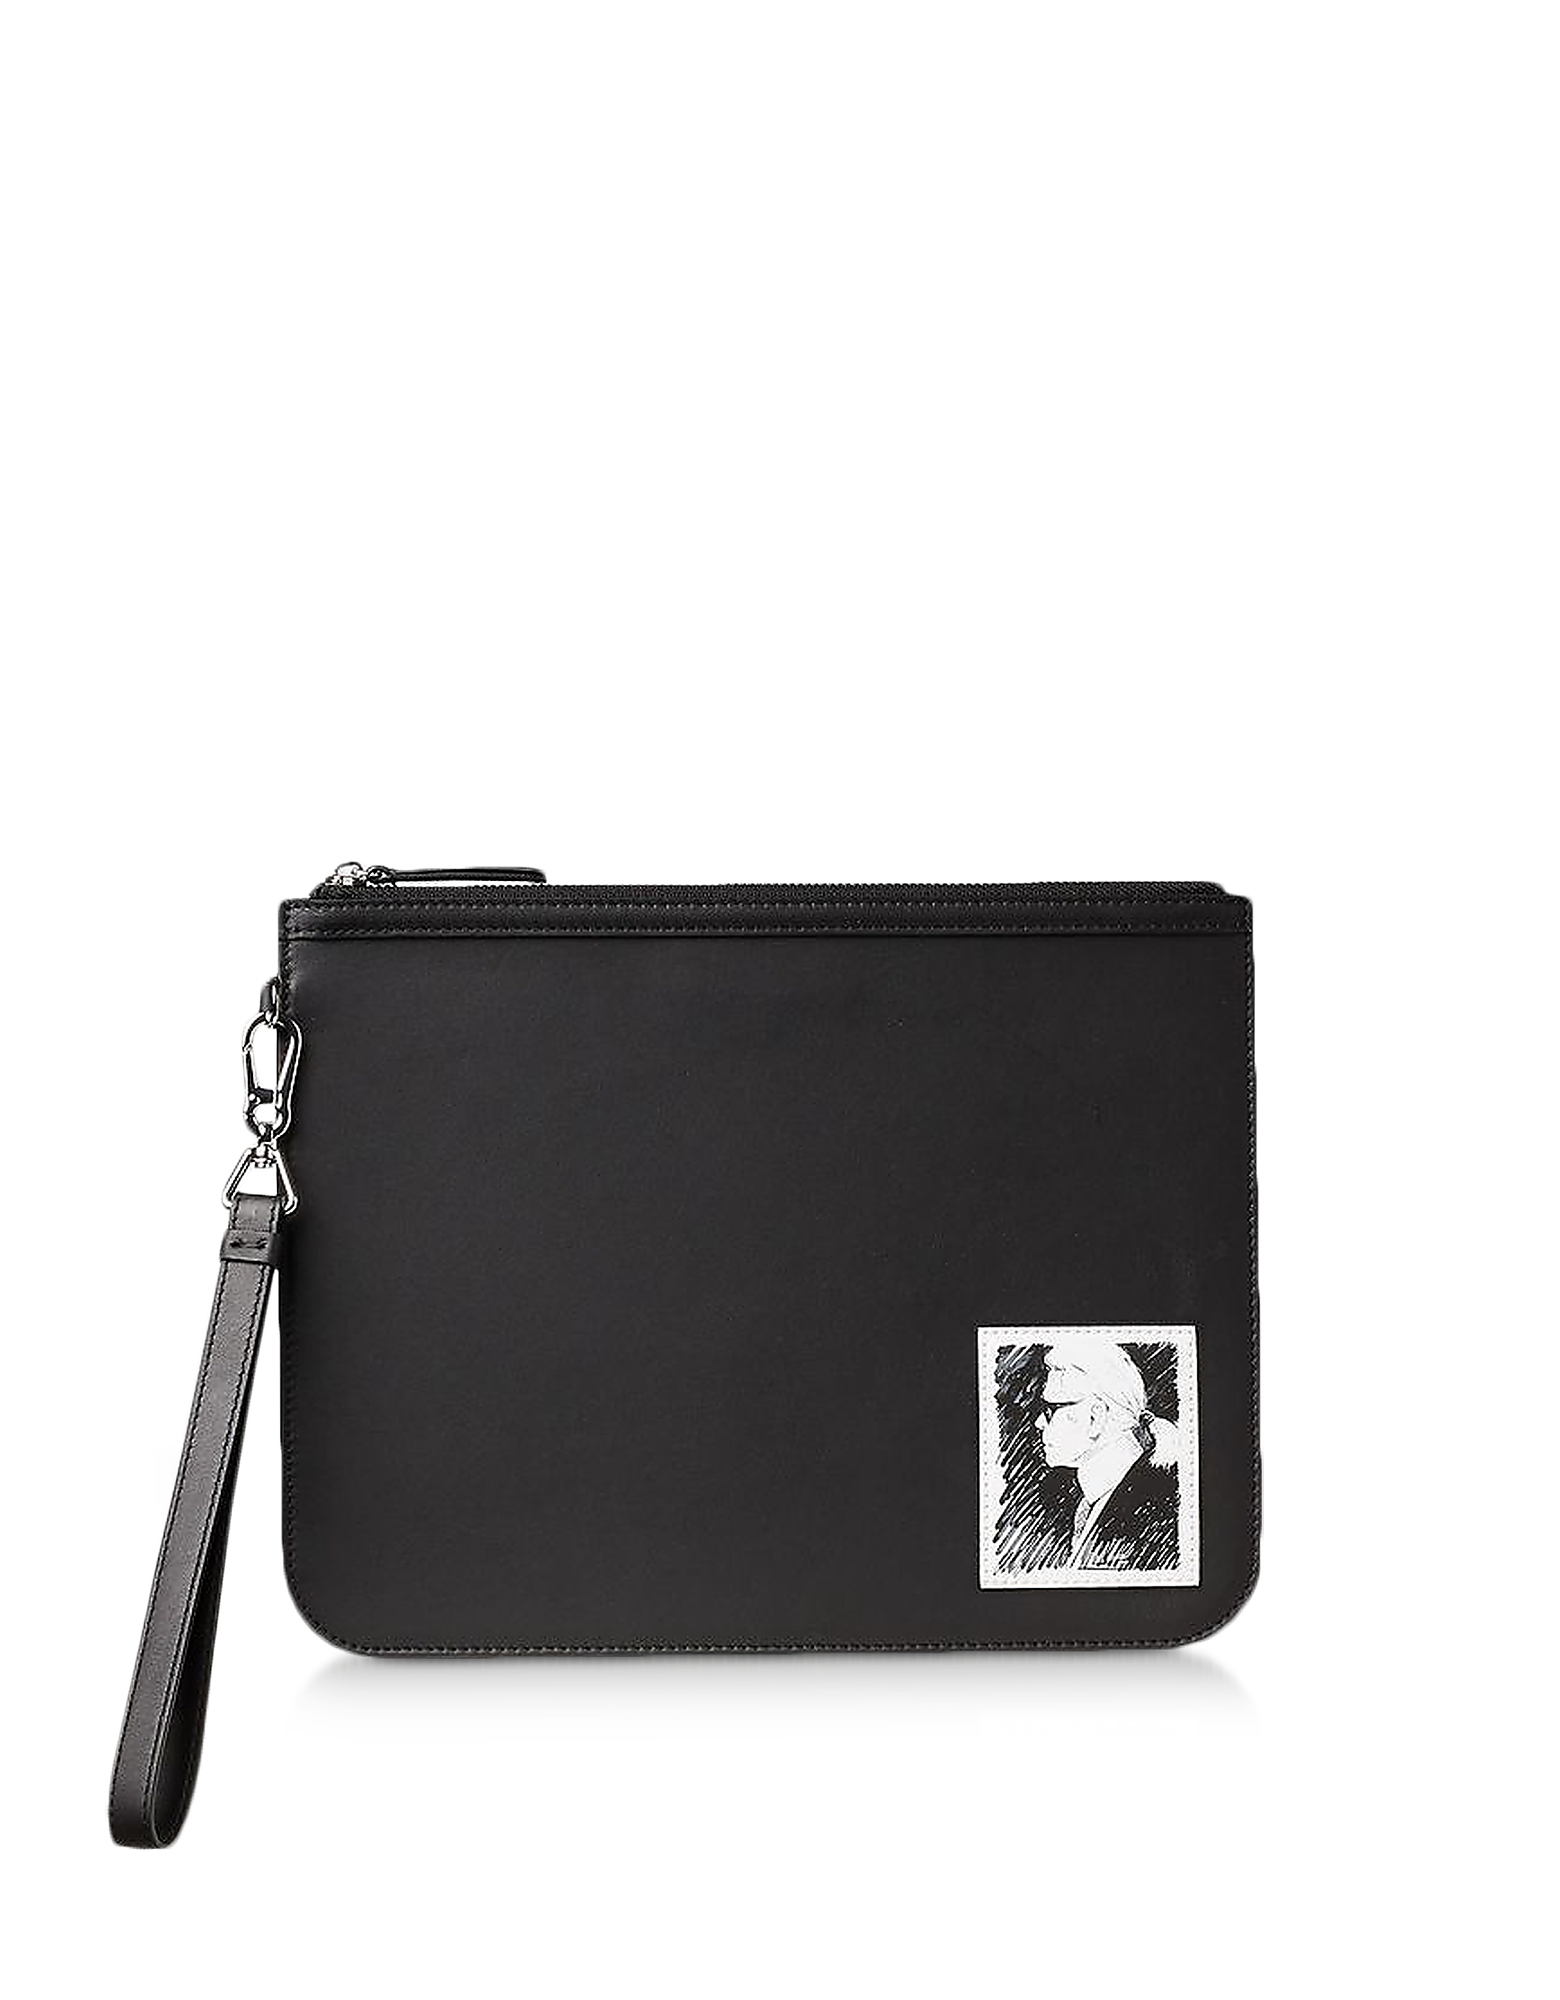 Karl Lagerfeld Designer Handbags, Karl Legend Luxury Clutch